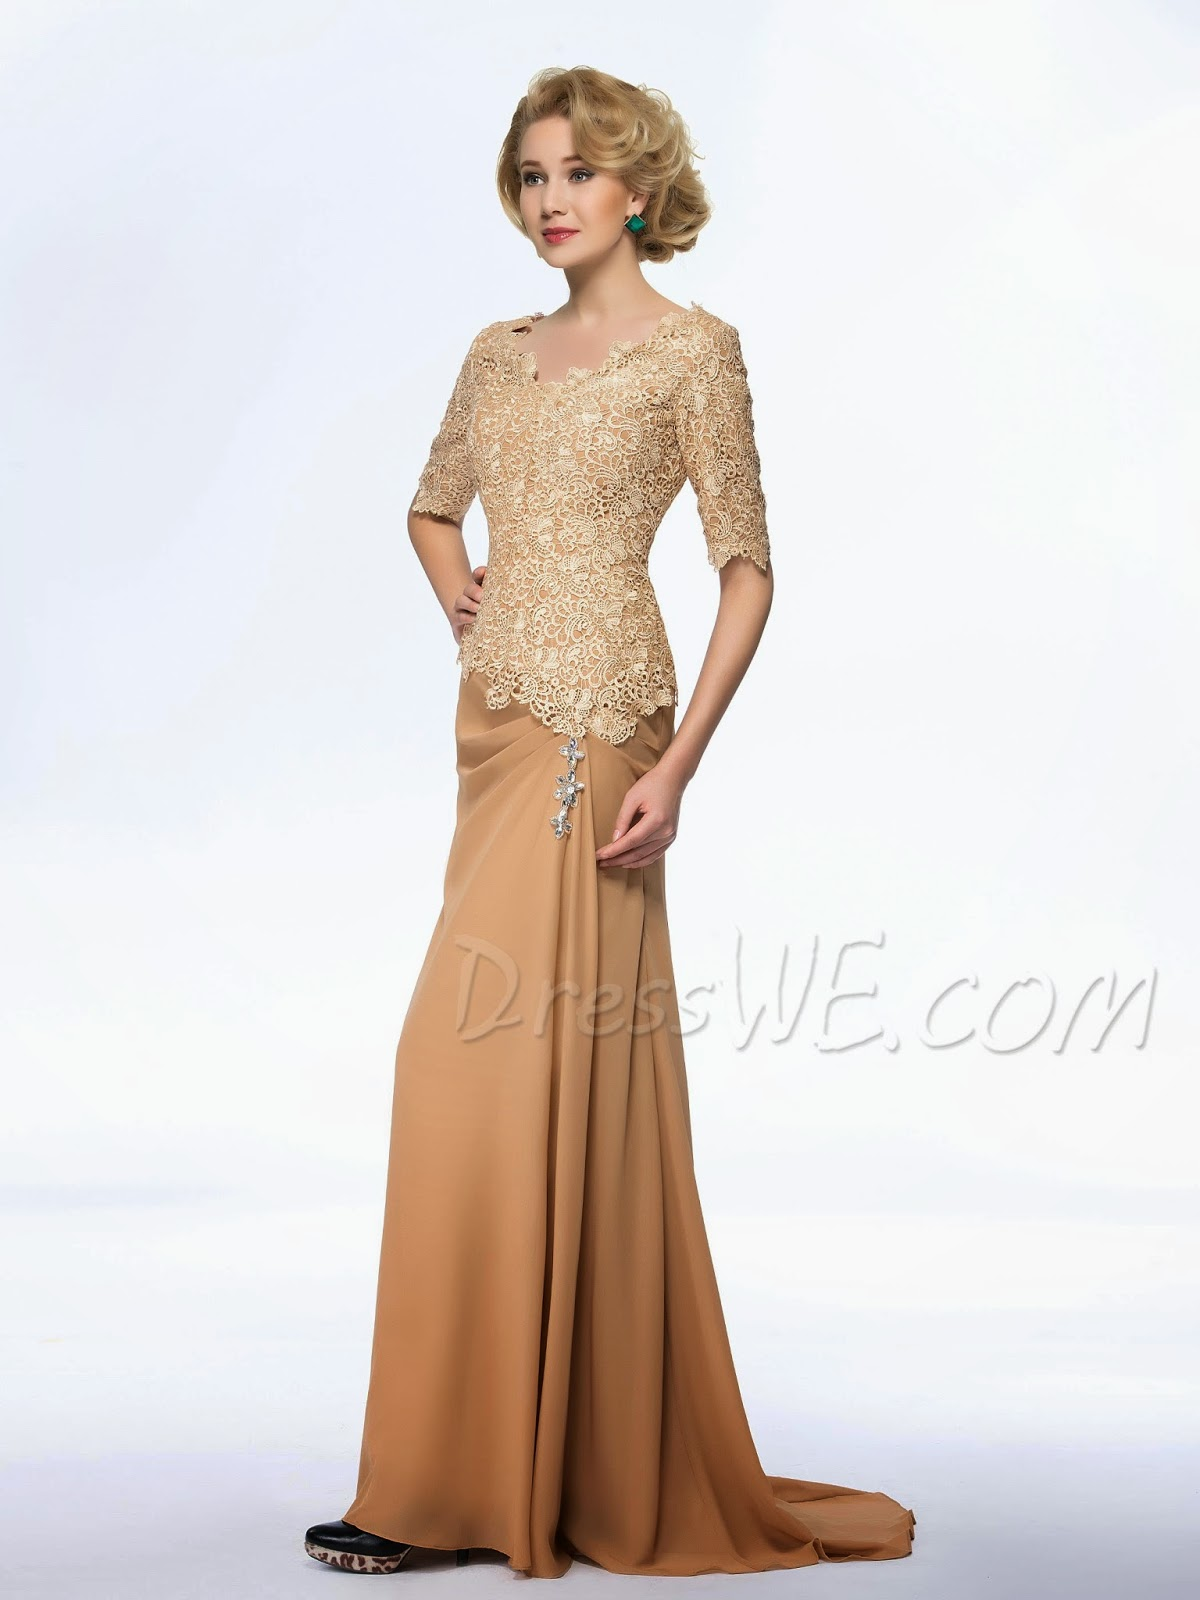 Dresswe Discount Dresses And Wedding Shoes For Mother Of Bride